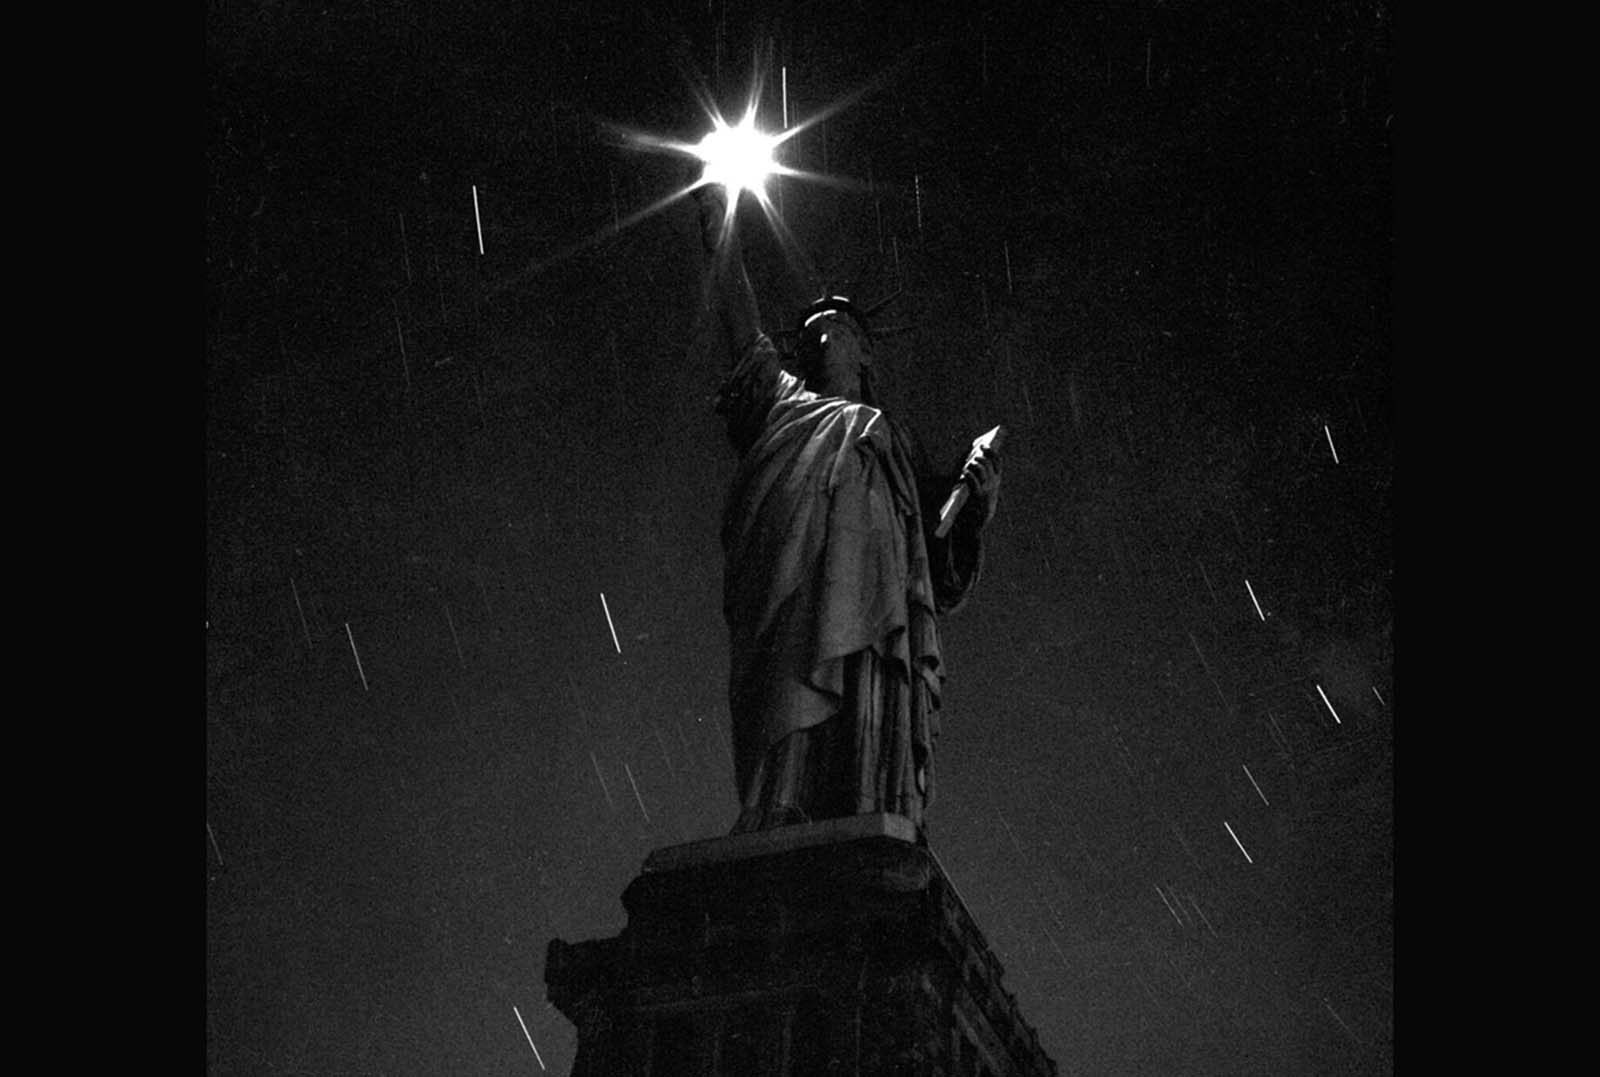 A view of the statue taken at night, during a blackout designed to help conserve energy during World War II, in March of 1942.